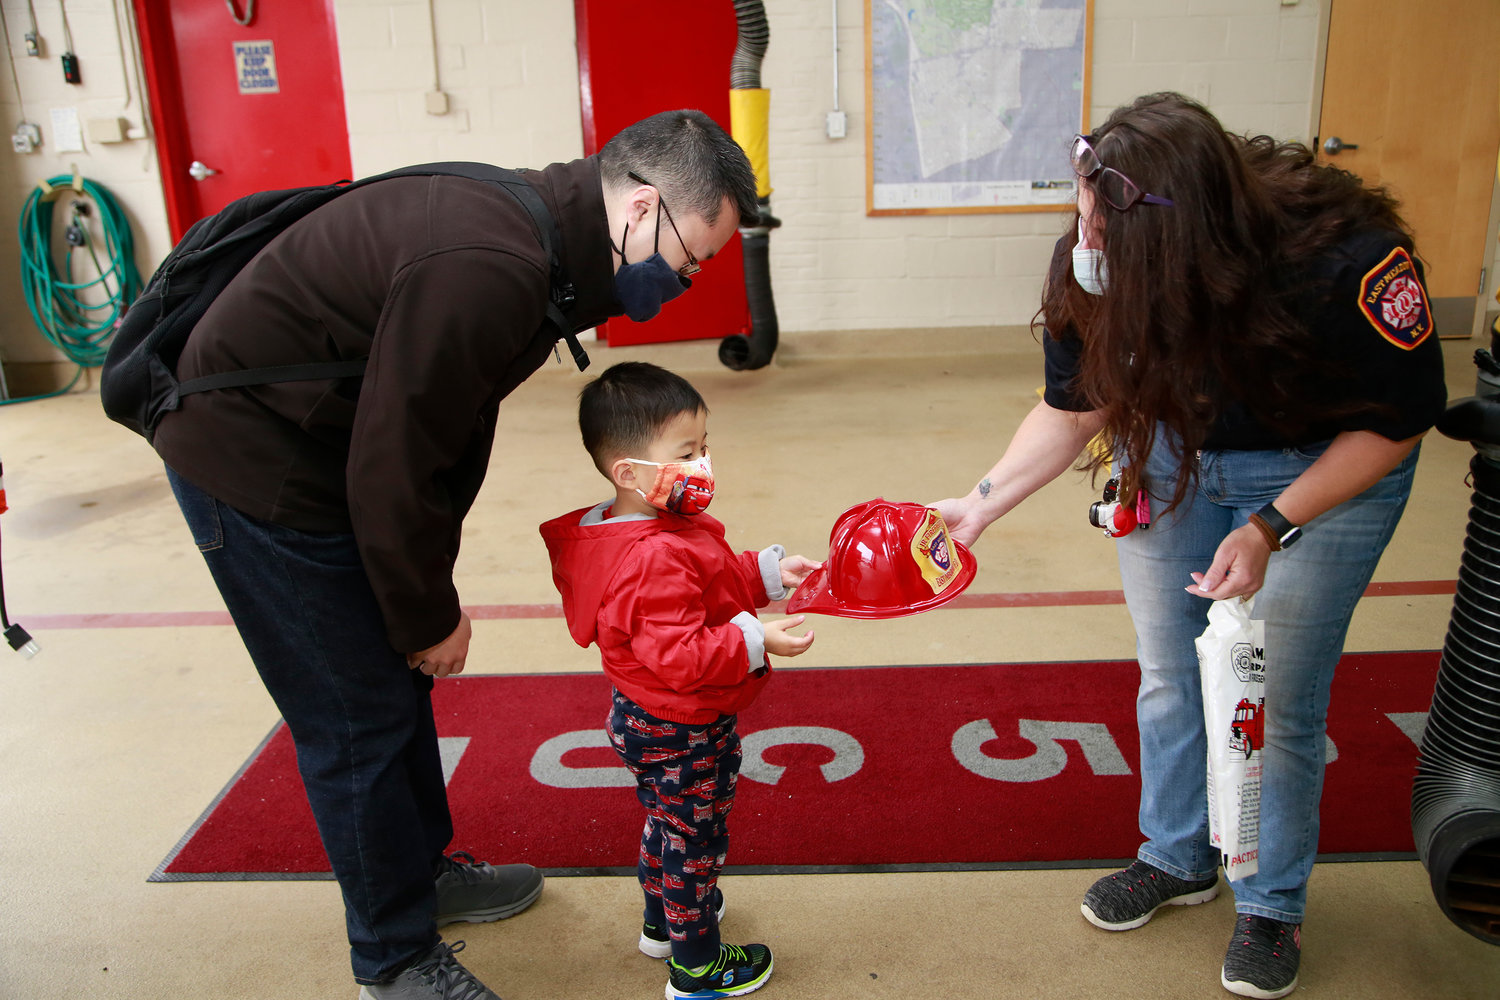 Donald Lim didn't have to coax Theodore, 3, to accept a firefighter's hat from Rescue Co. 5 Capt. Robin Fitzpatrick at RecruitNY last Sunday.